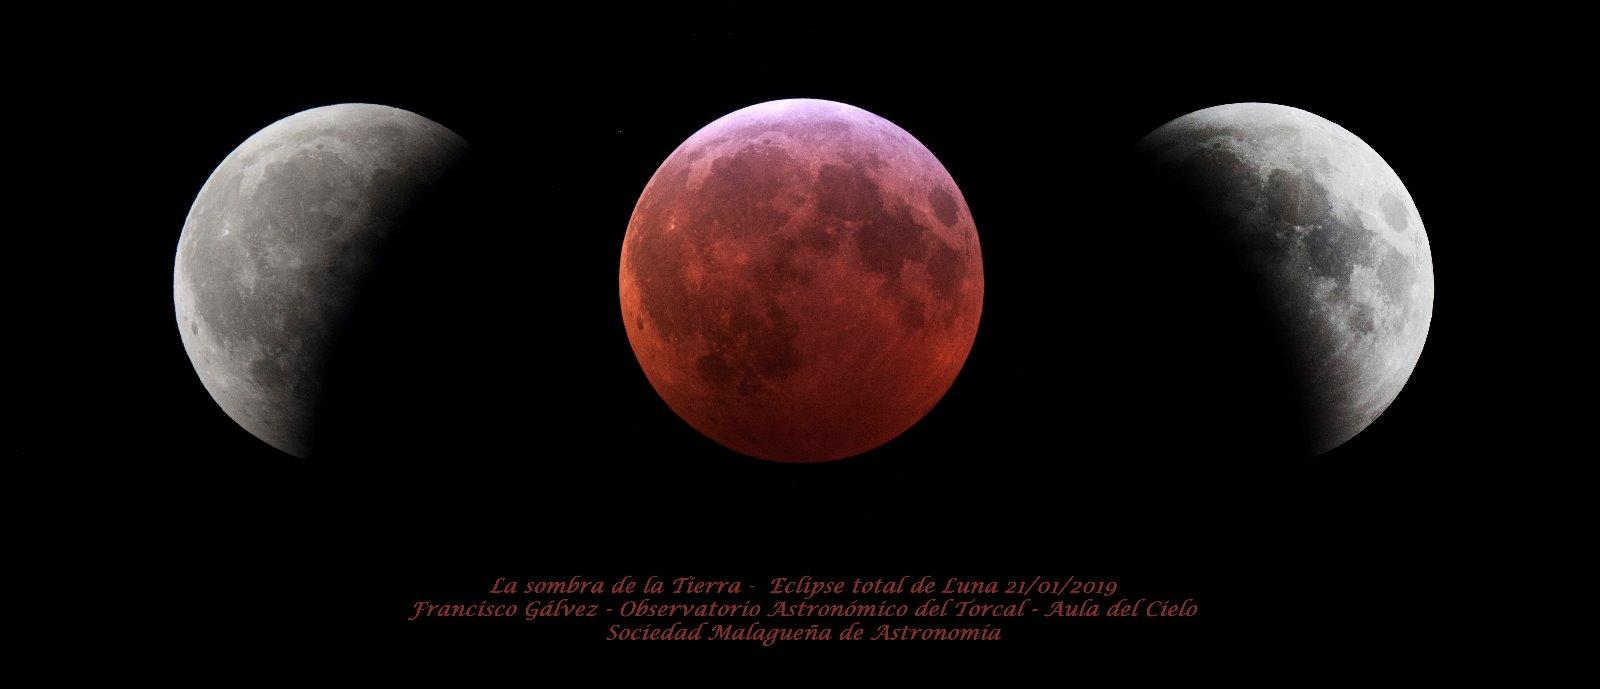 El eclipse total de Luna del 21-01-2018